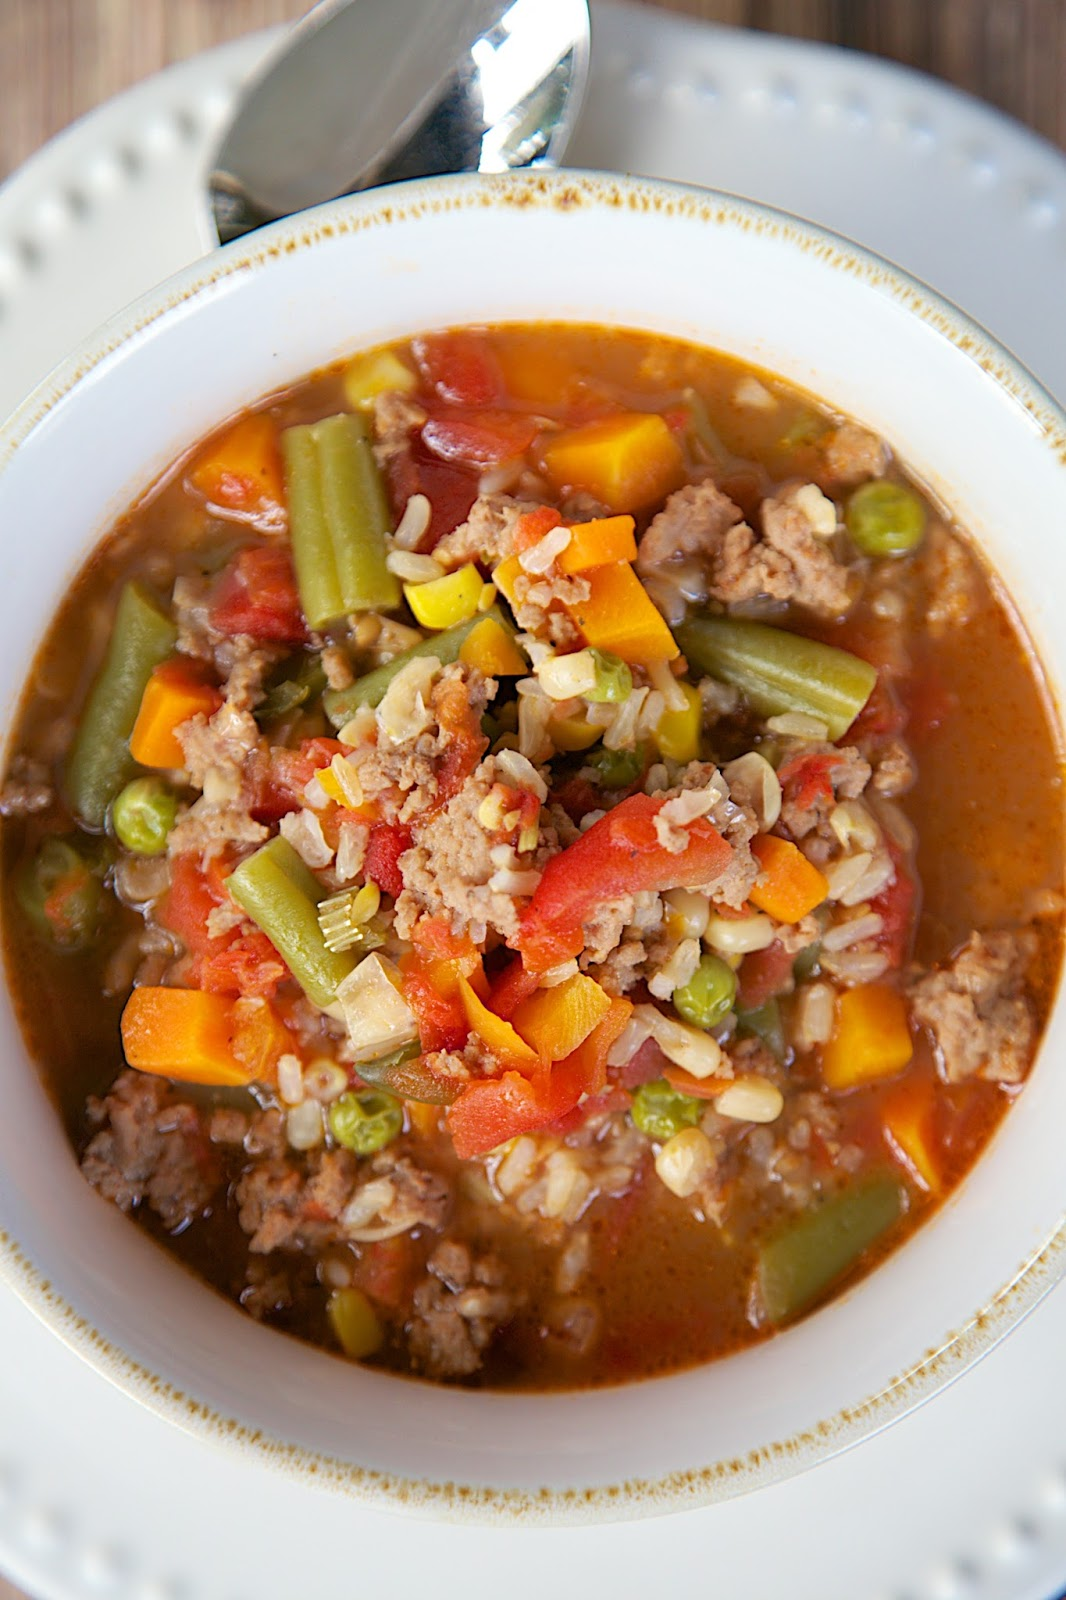 Turkey Vegetable Soup - ground turkey, mixed vegetables, beef broth and brown rice - ready in under 30 minutes. Leftovers are great for lunch and it freezes well. My husband gobbled this up! I've already made it 3 times this month!!